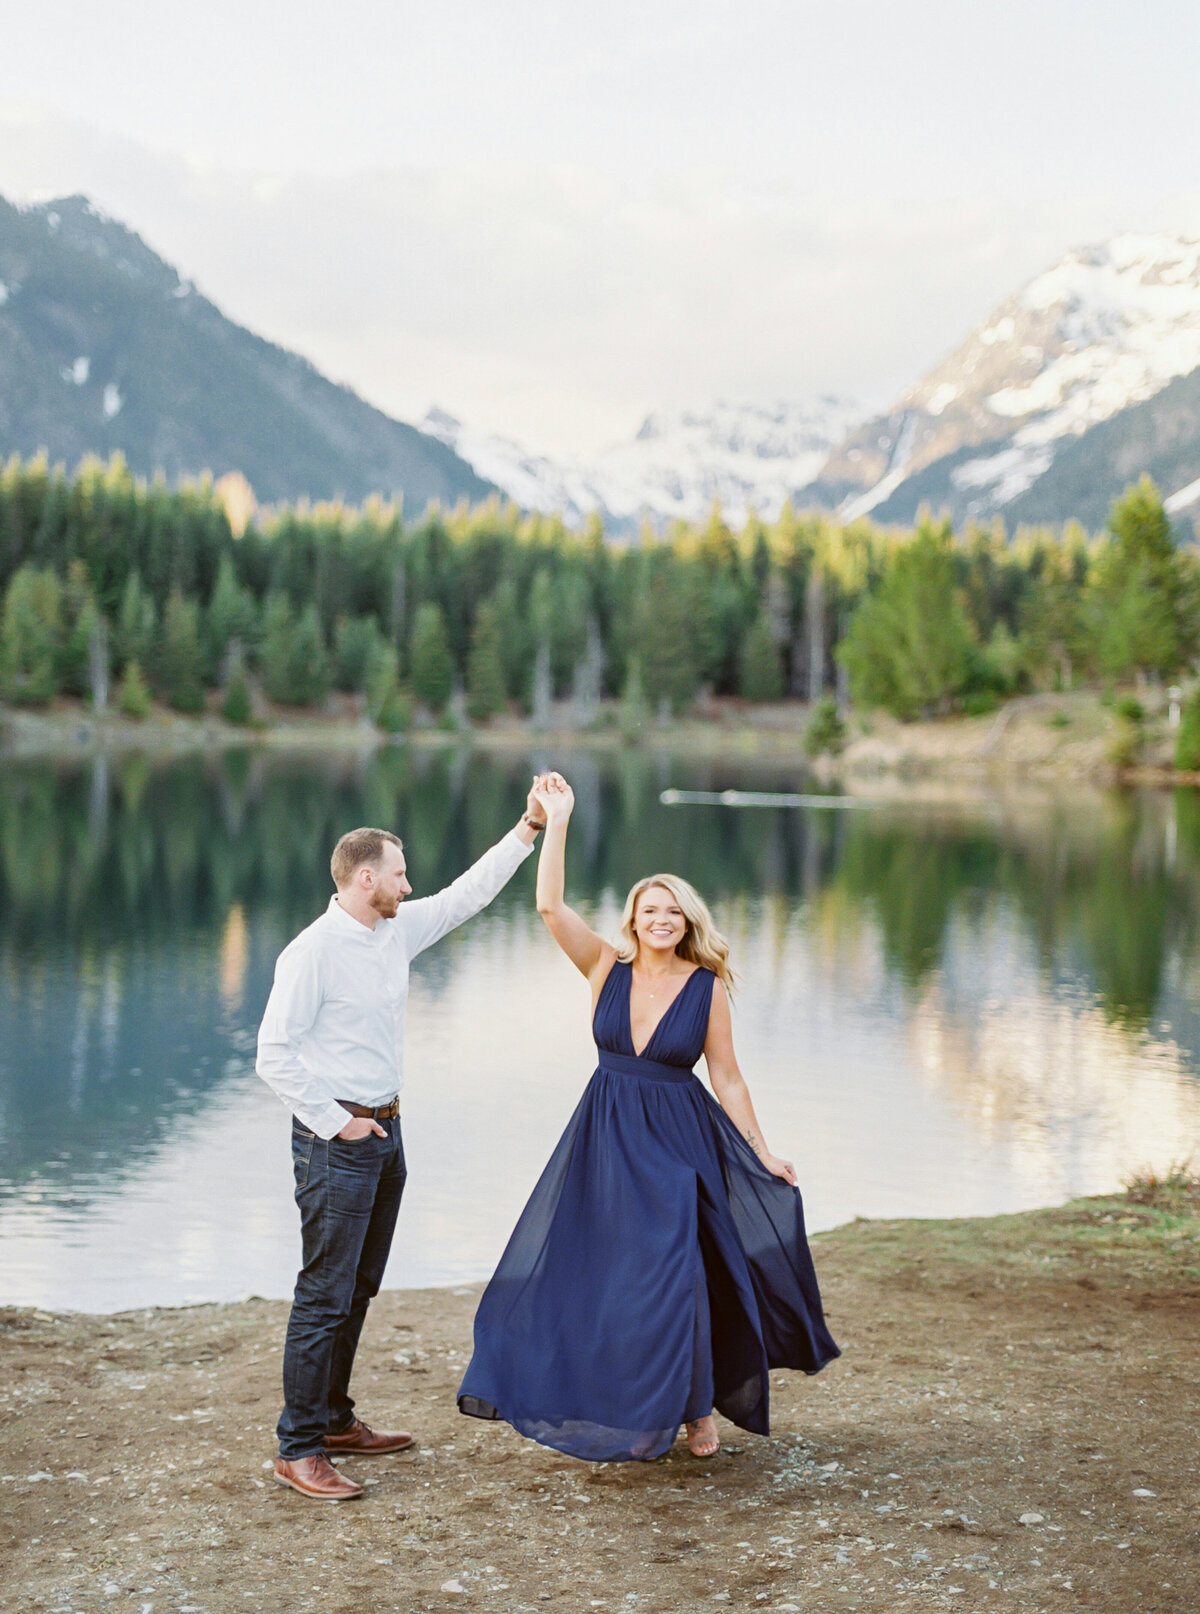 Farrah & Aron's Engagement -Tetiana Photography-178